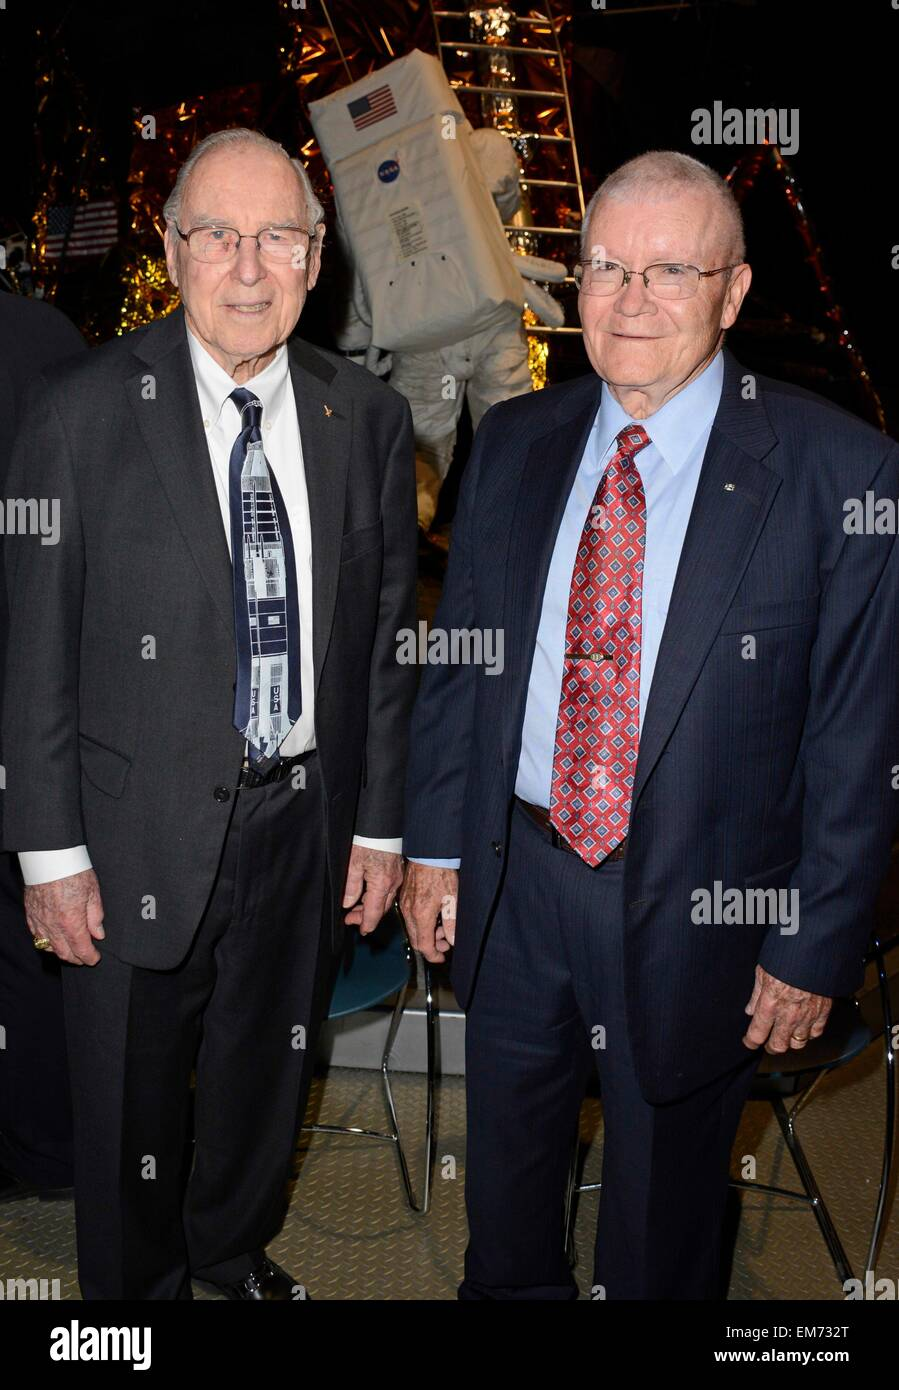 Garden City, NY, USA. 16th Apr, 2015. Jim Lovell, Fred Haise in attendance for Apollo 13 45th Anniversary Reunion - Stock Image